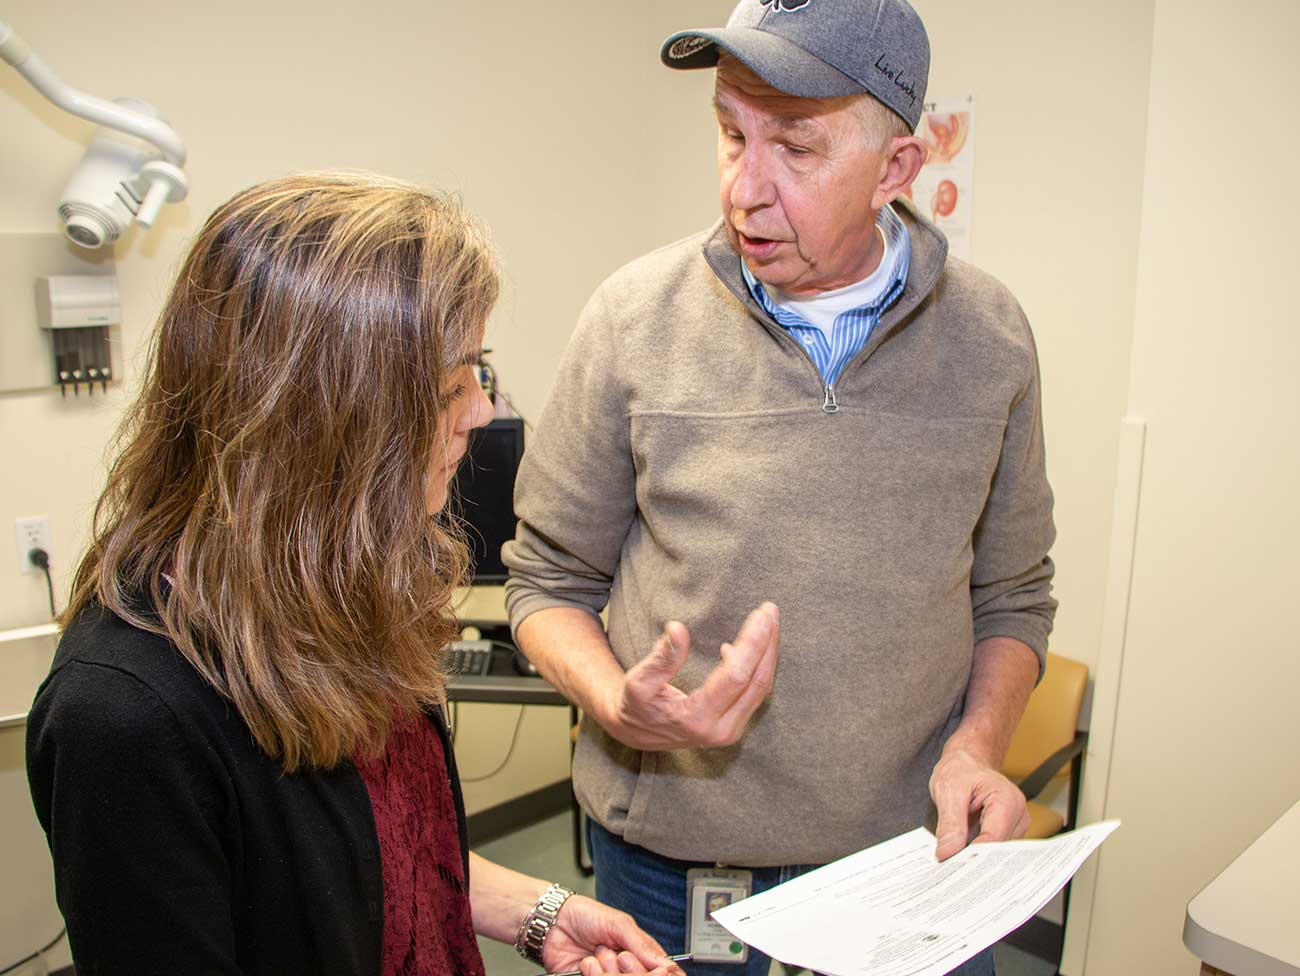 Kaiser Permanente Northwest member Bob confers with nurse navigator Bobbie Provence about his treatment and care plan.